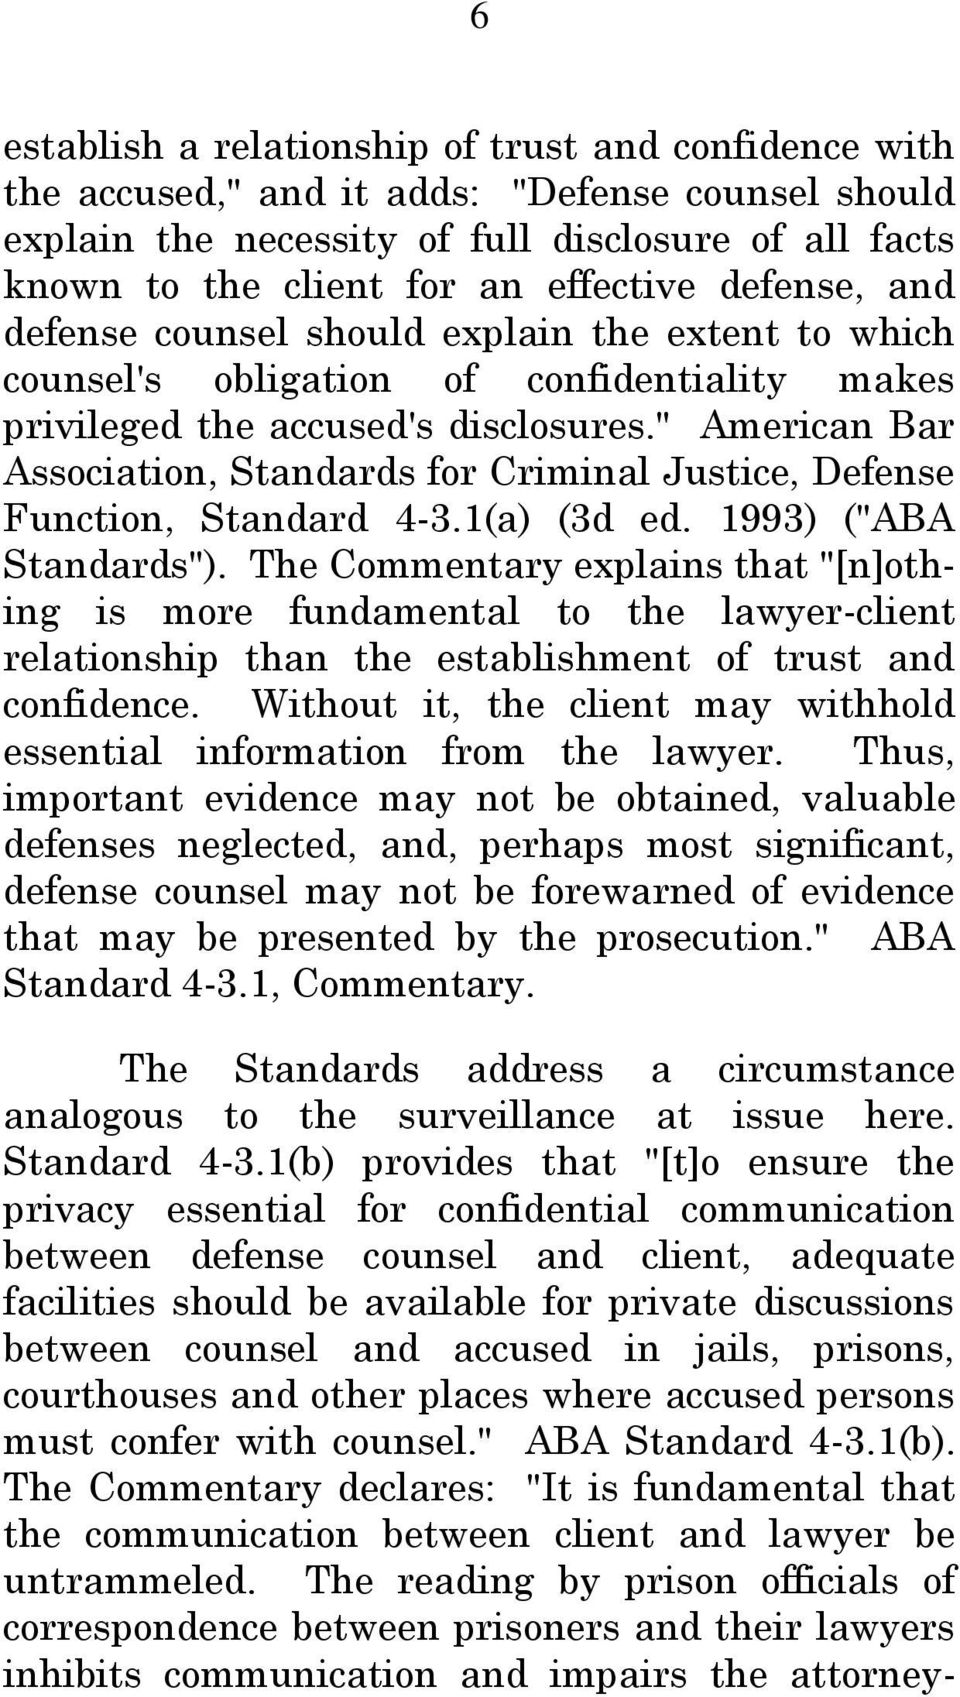 """ American Bar Association, Standards for Criminal Justice, Defense Function, Standard 4-3.1(a) (3d ed. 1993) (""ABA Standards"")."